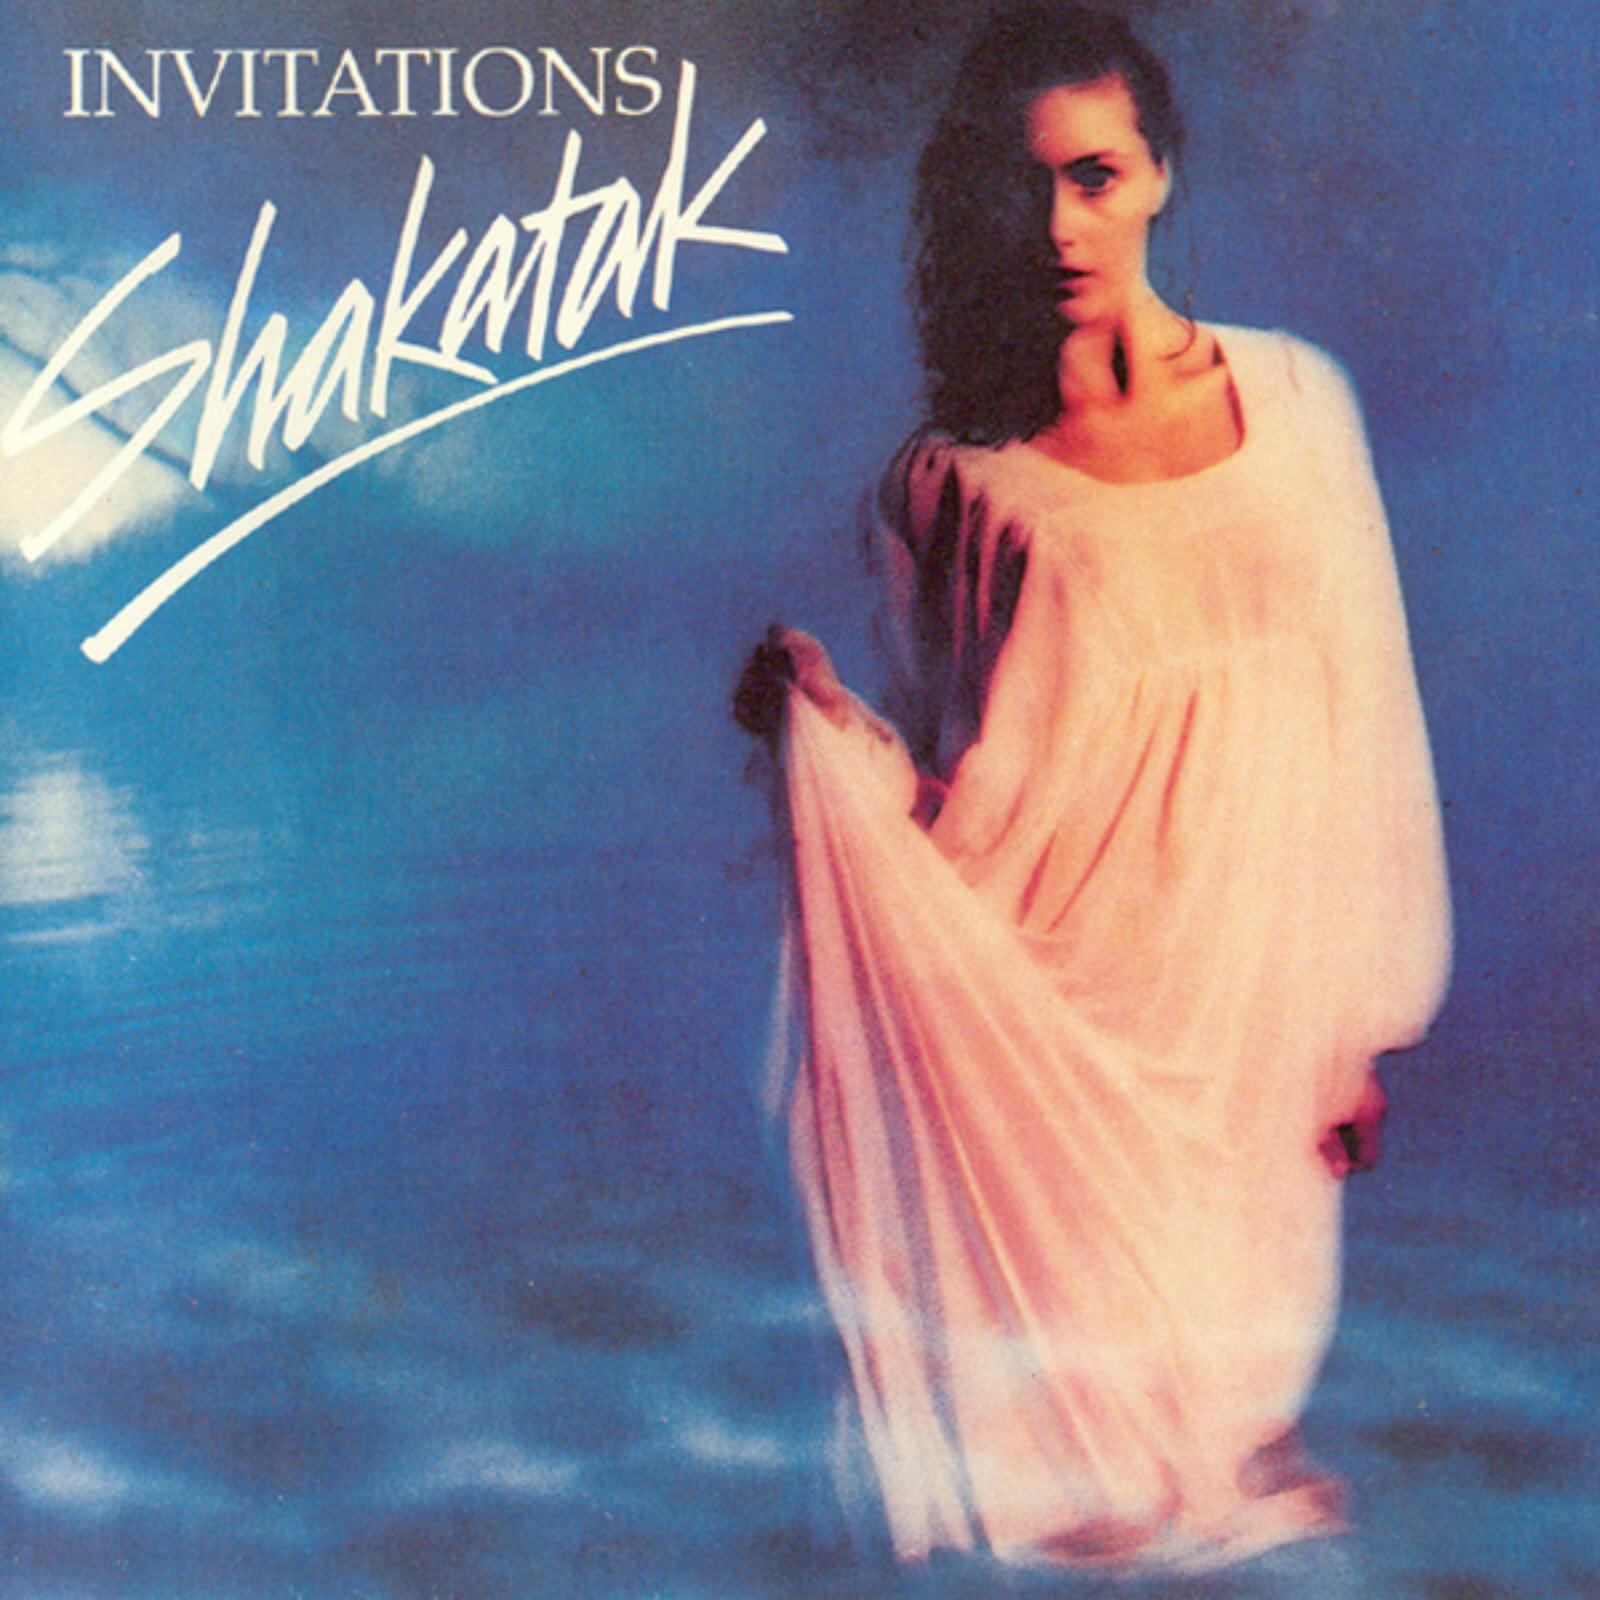 Shakatak Invitations